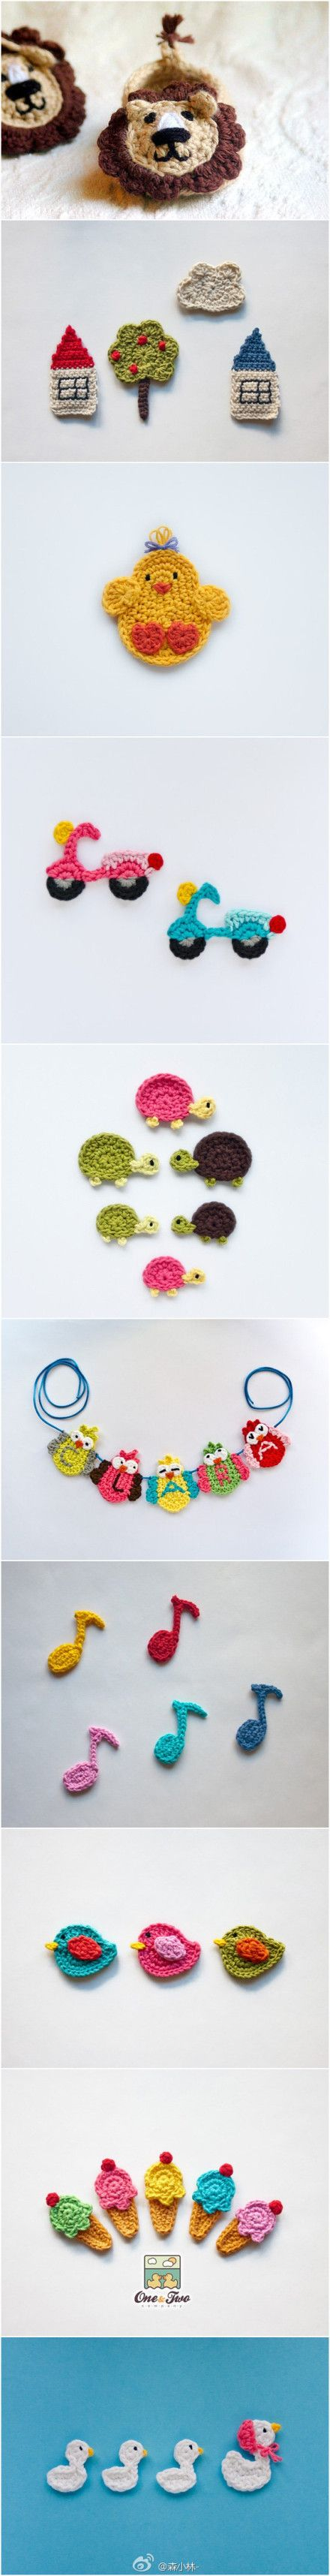 little crochets